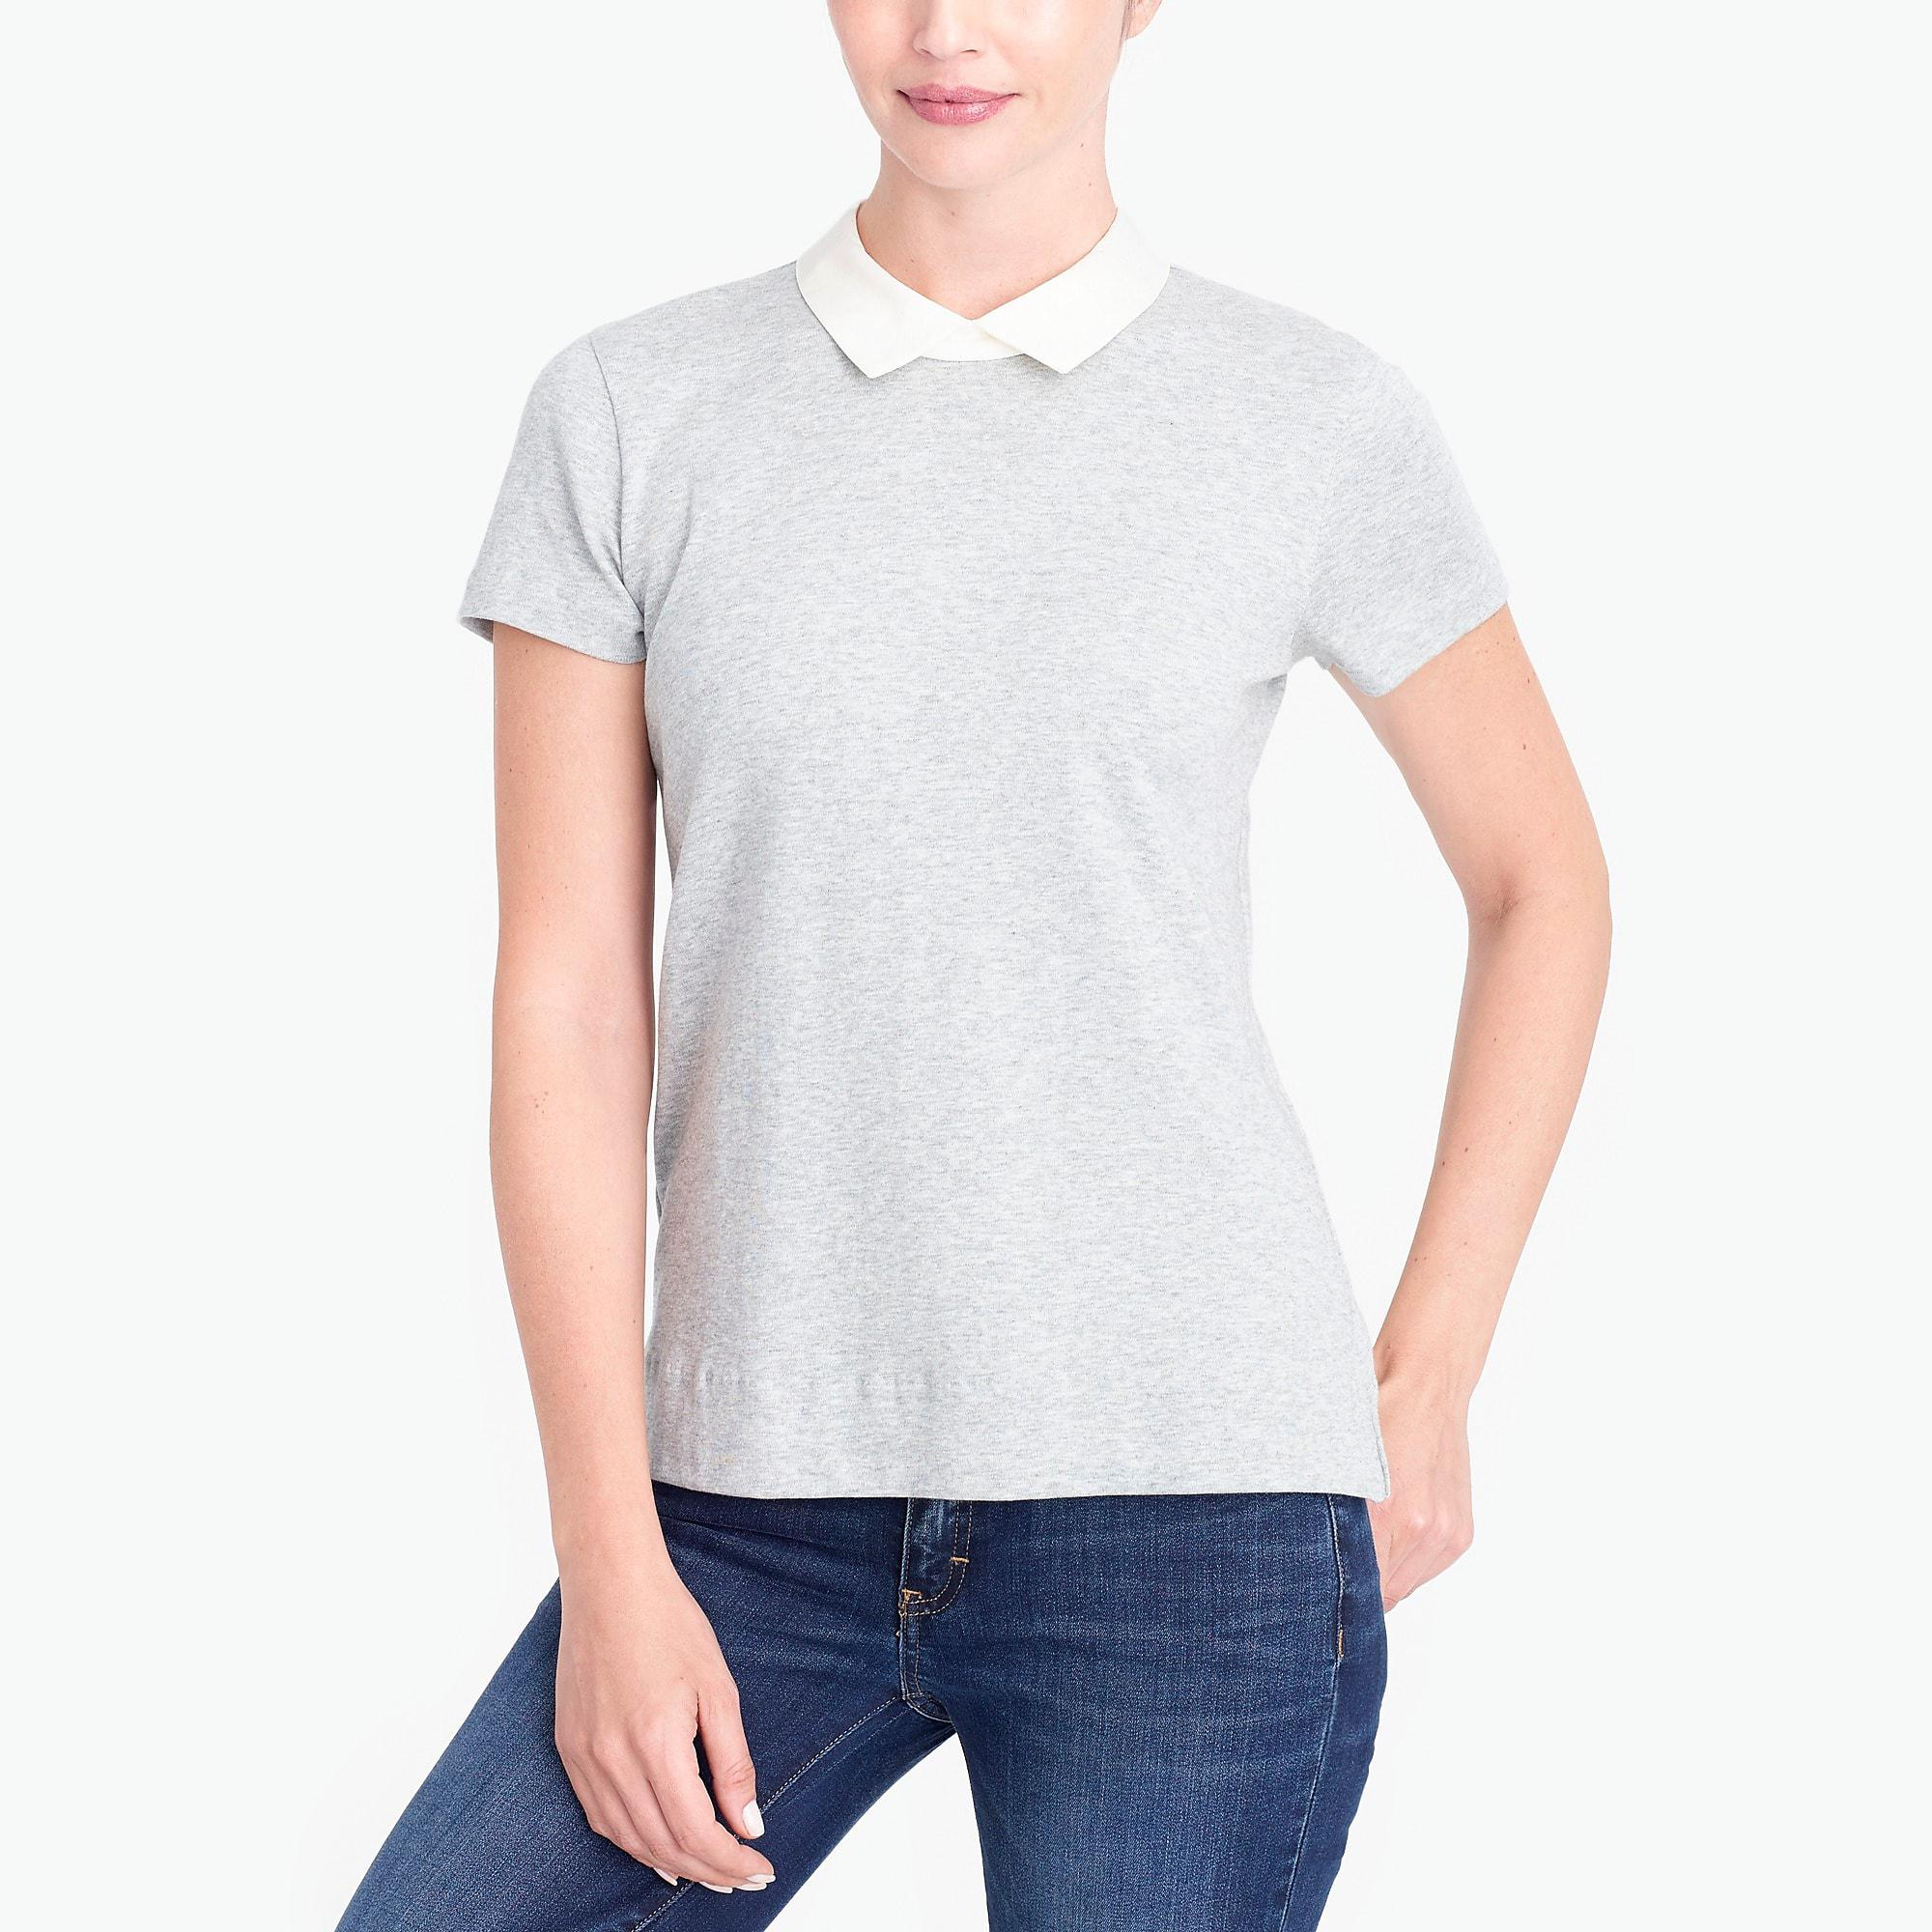 88c5c7703 White Peter Pan Collar T Shirt – EDGE Engineering and Consulting Limited